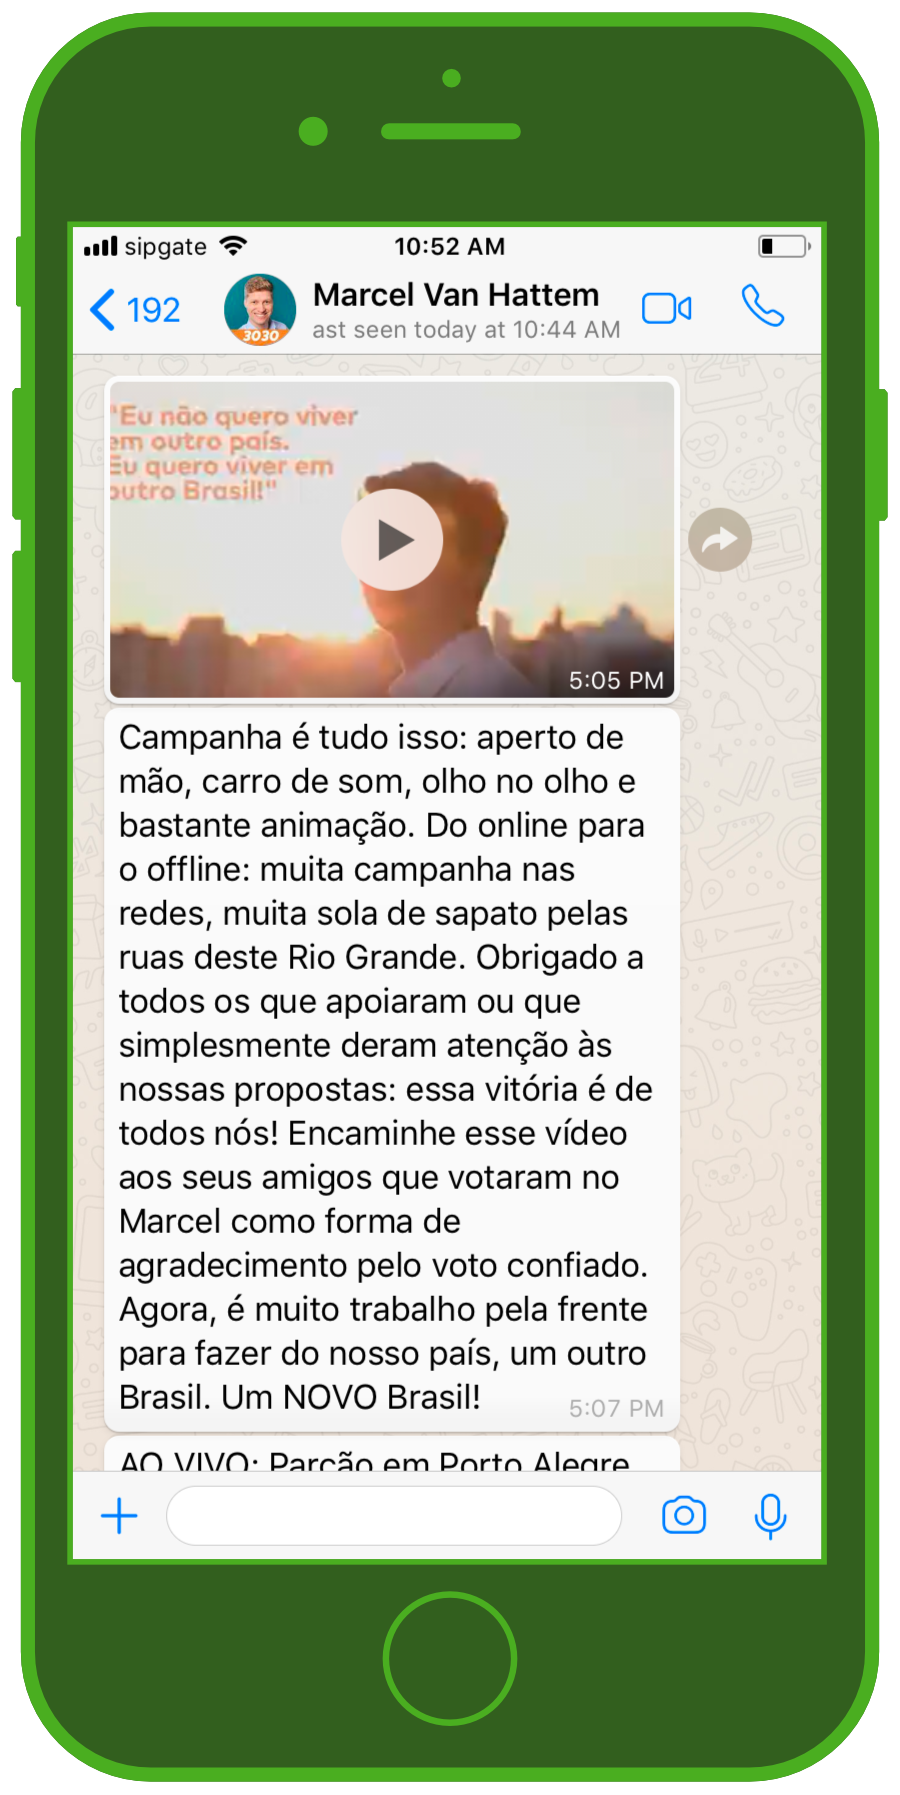 Election campaigns via WhatsApp – yea or nay? | MessengerPeople